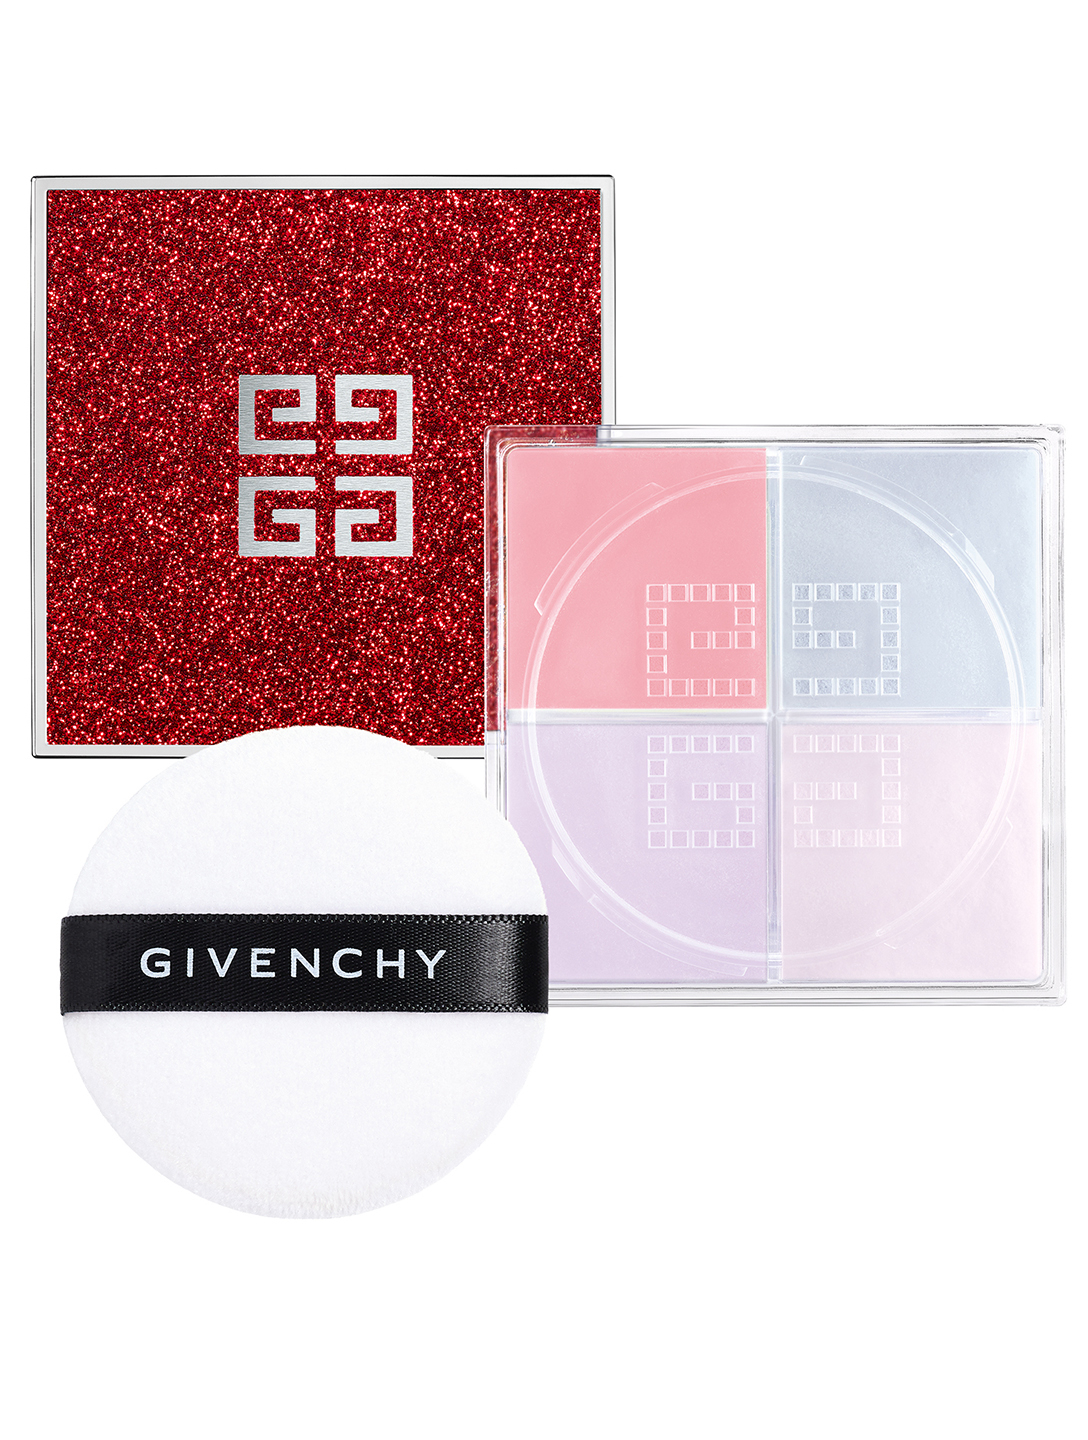 GIVENCHY Prisme Libre Loose Powder - Holiday Red Edition Beauty No Color